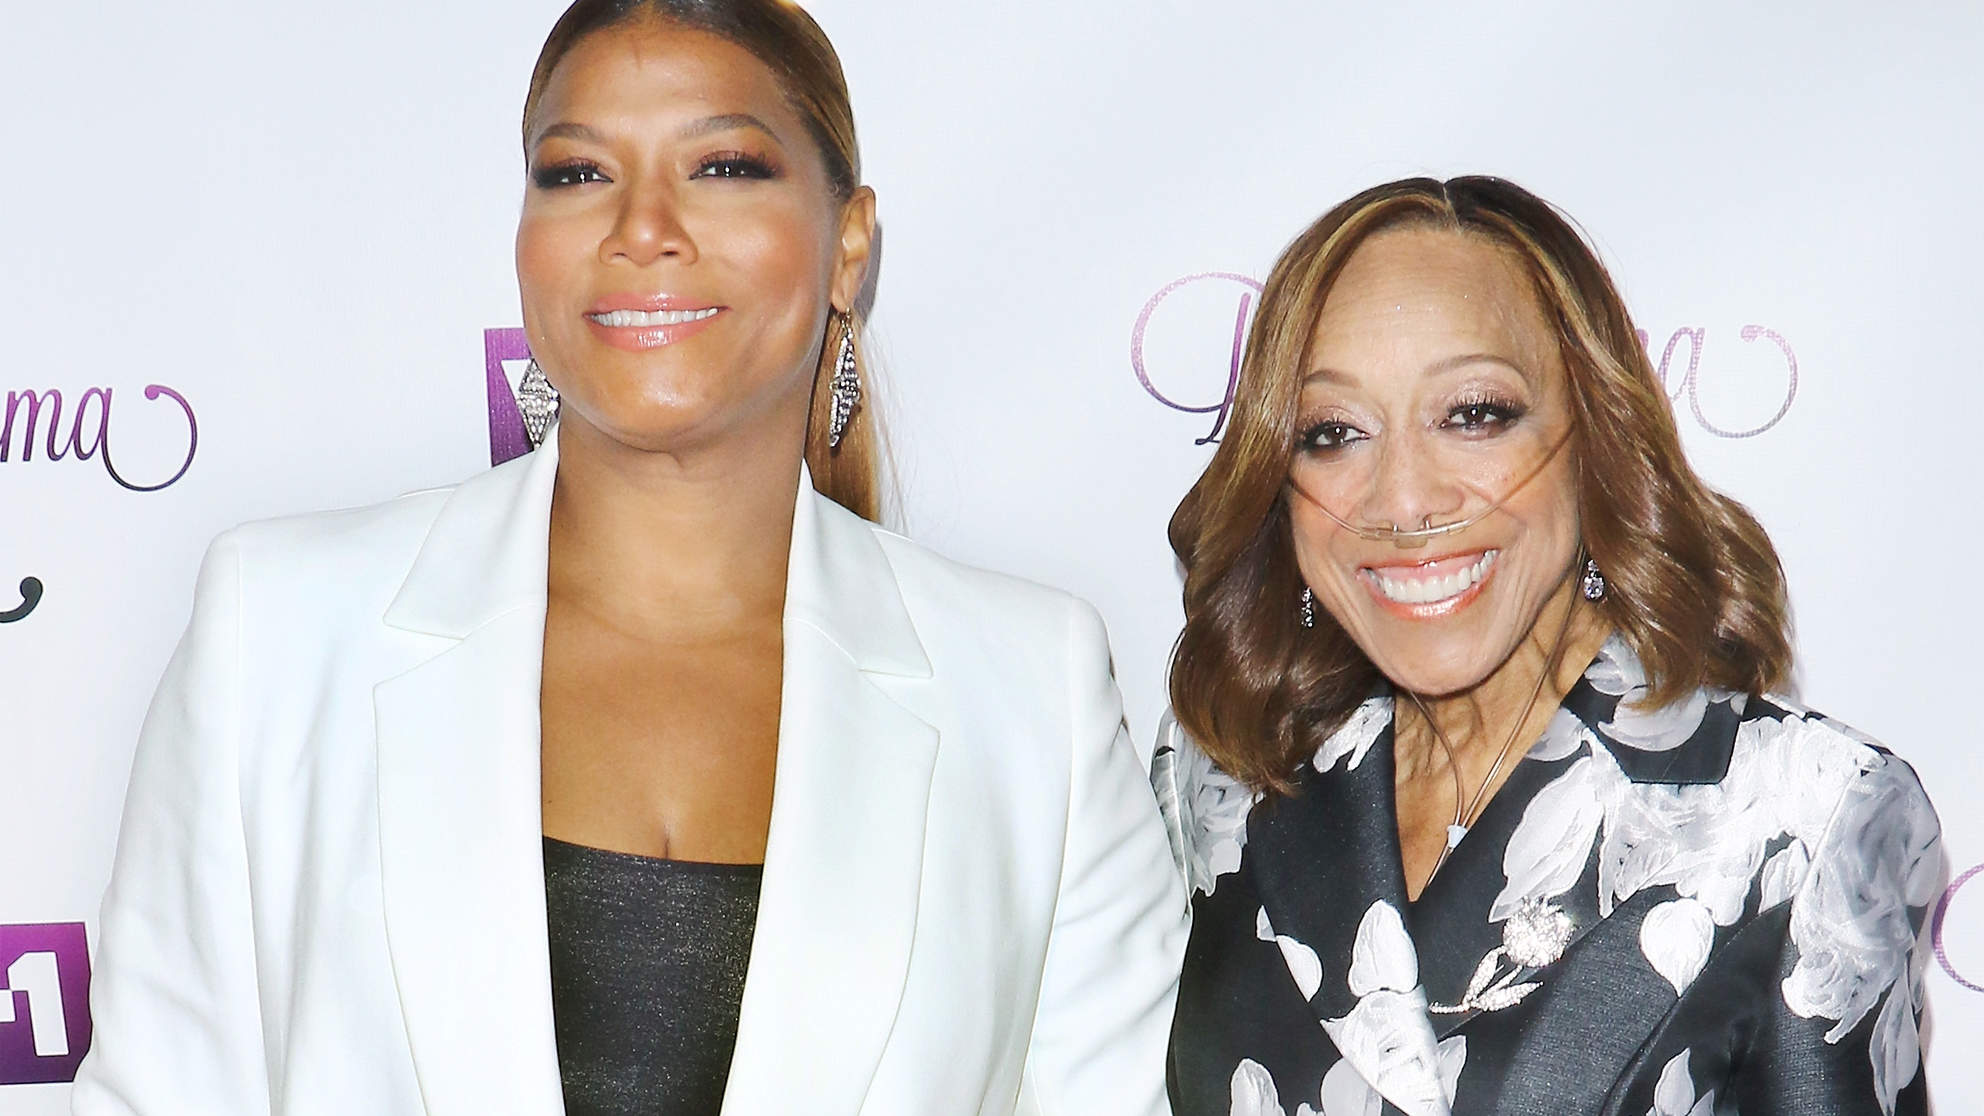 Queen Latifah's Mother Lived 14 Years With Heart Failure. Here's Why the Condition Is No Longer a Death Sentence